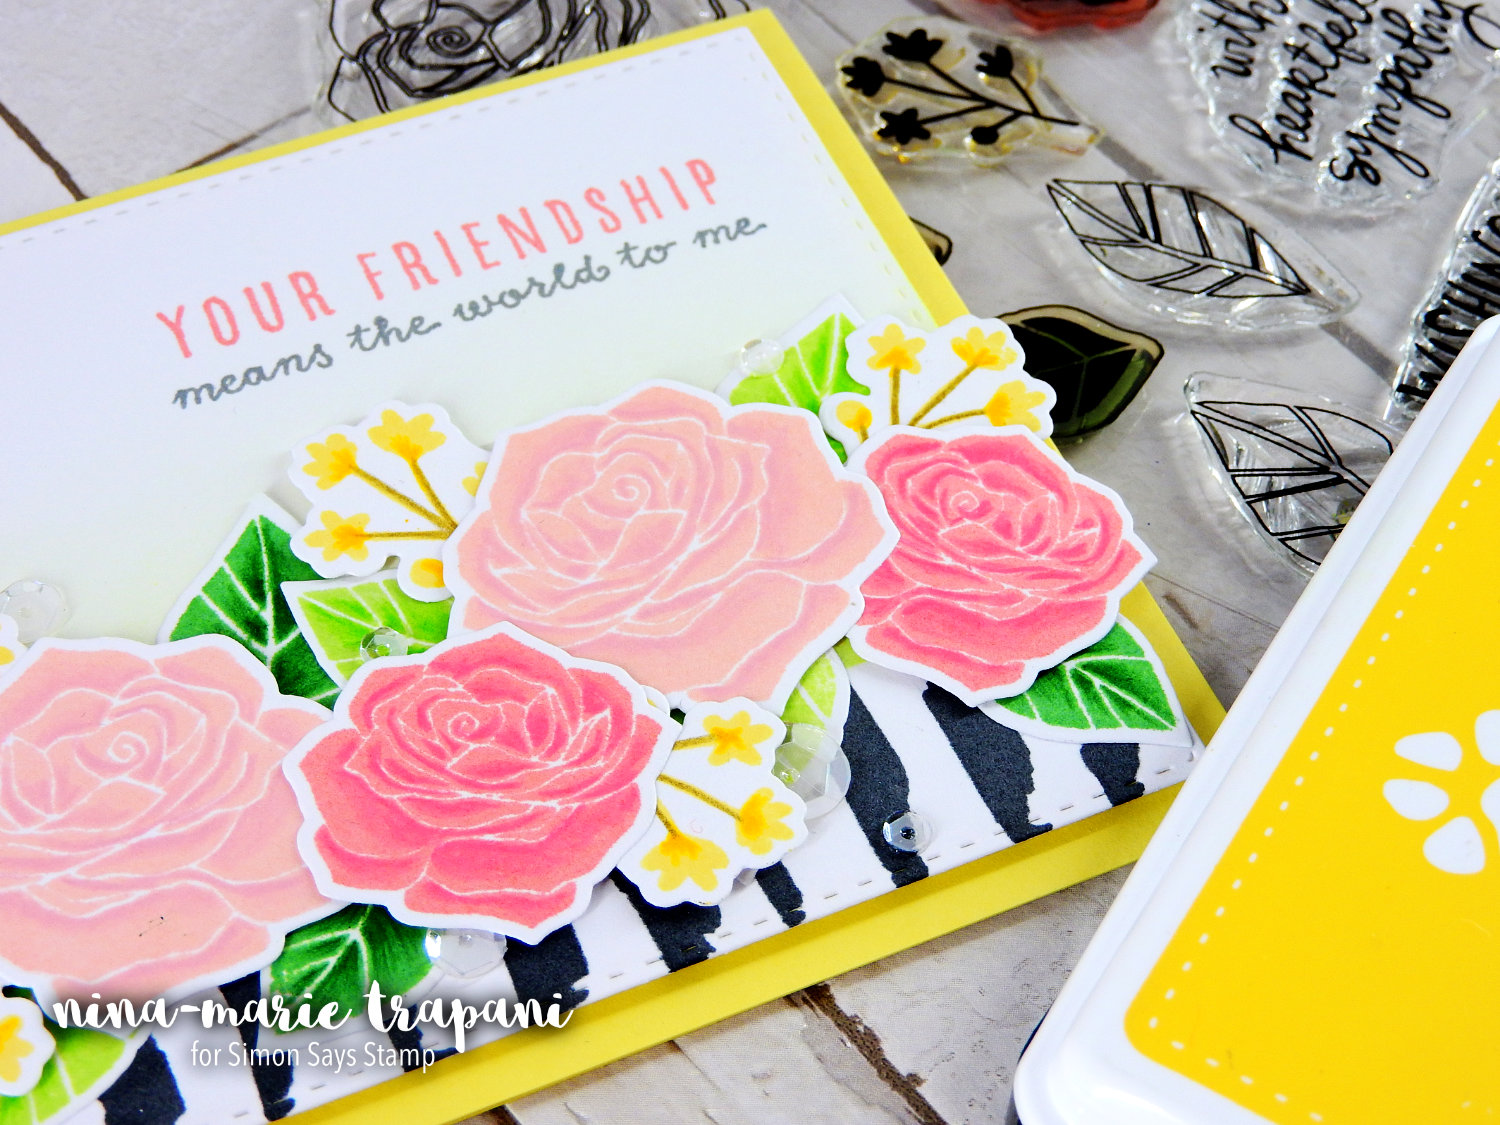 Adding Dimension to Solid Stamping | Nina-Marie Design